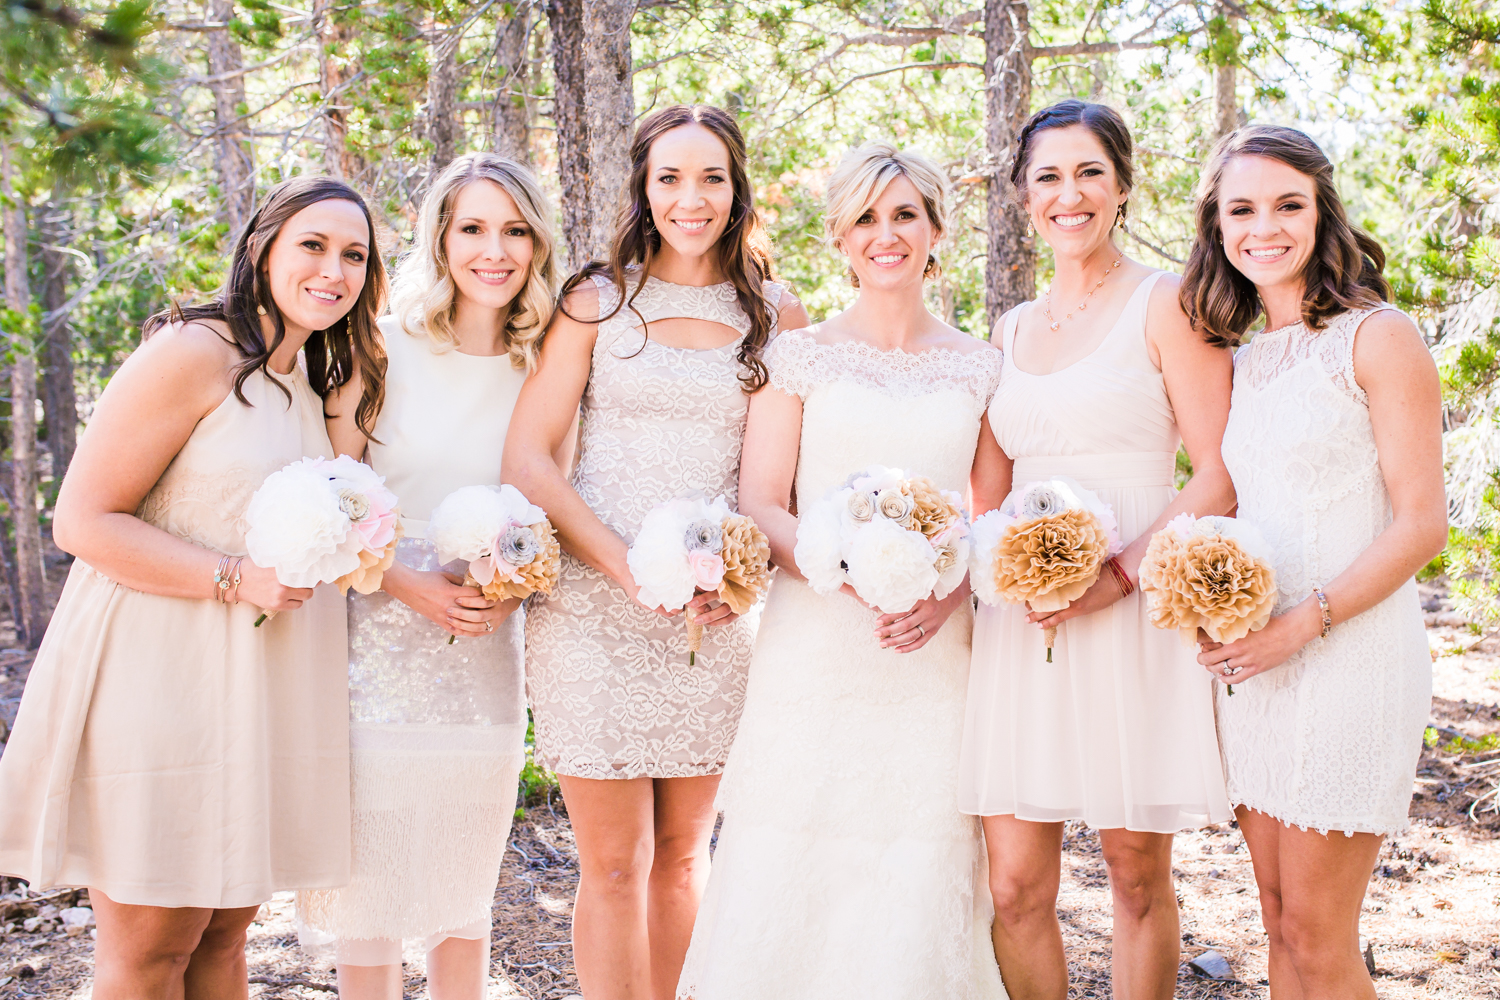 Bridesmaids for a day, best friends for life.